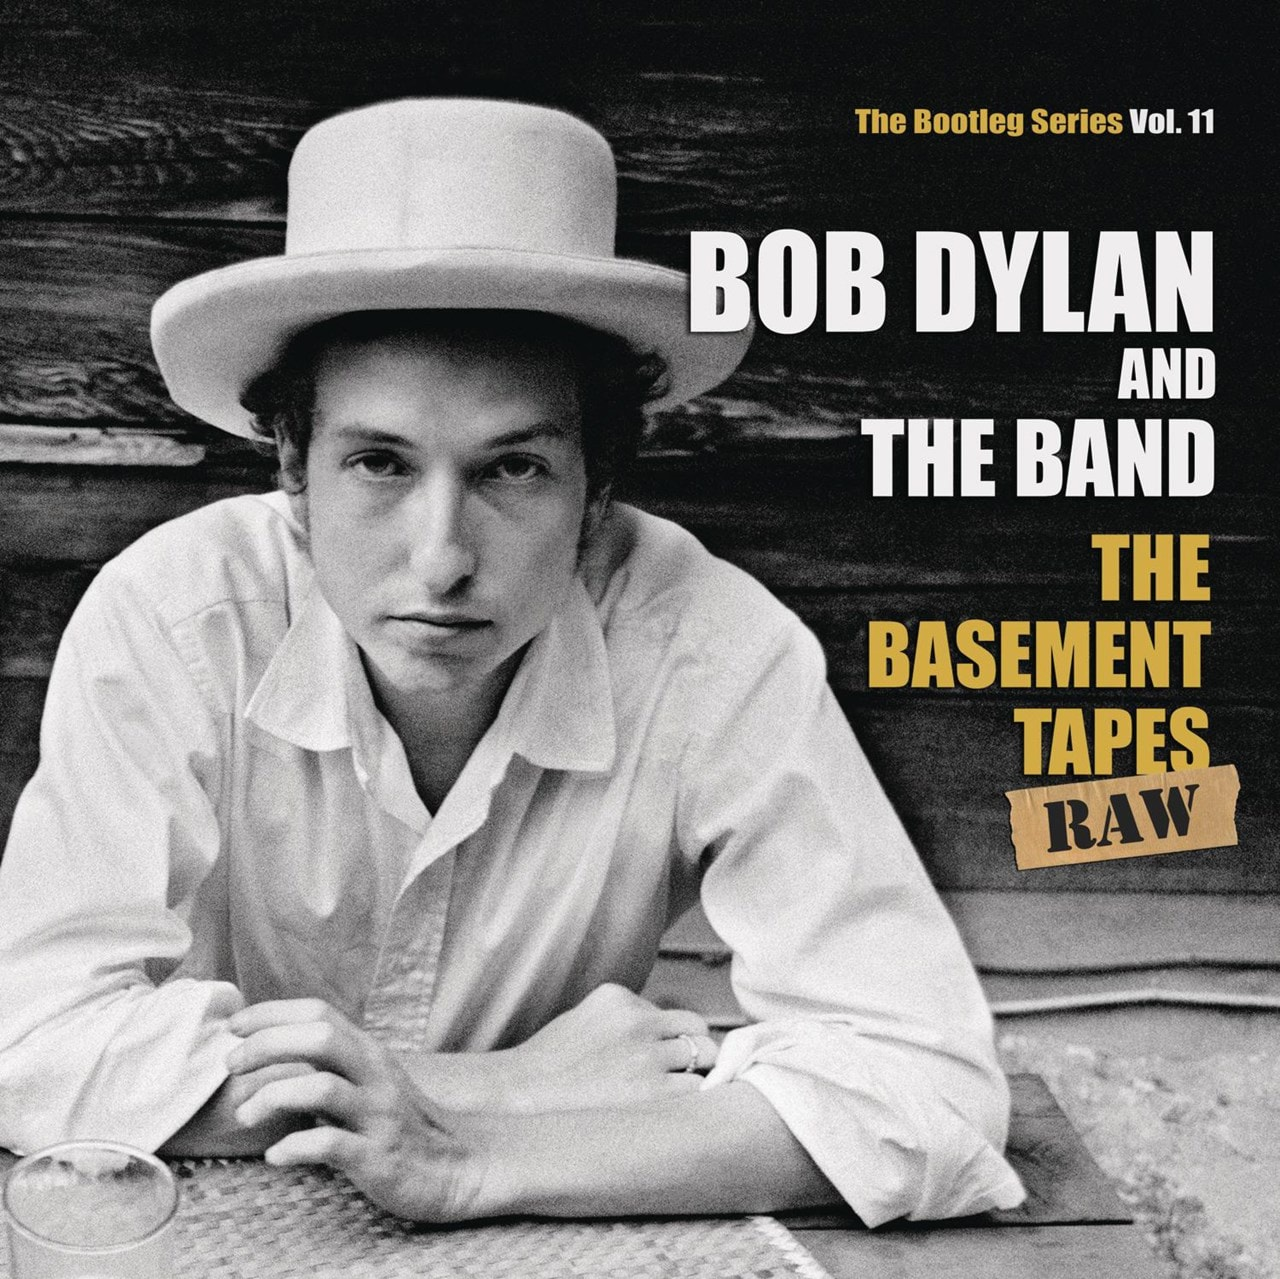 The Basement Tapes: Raw - 1